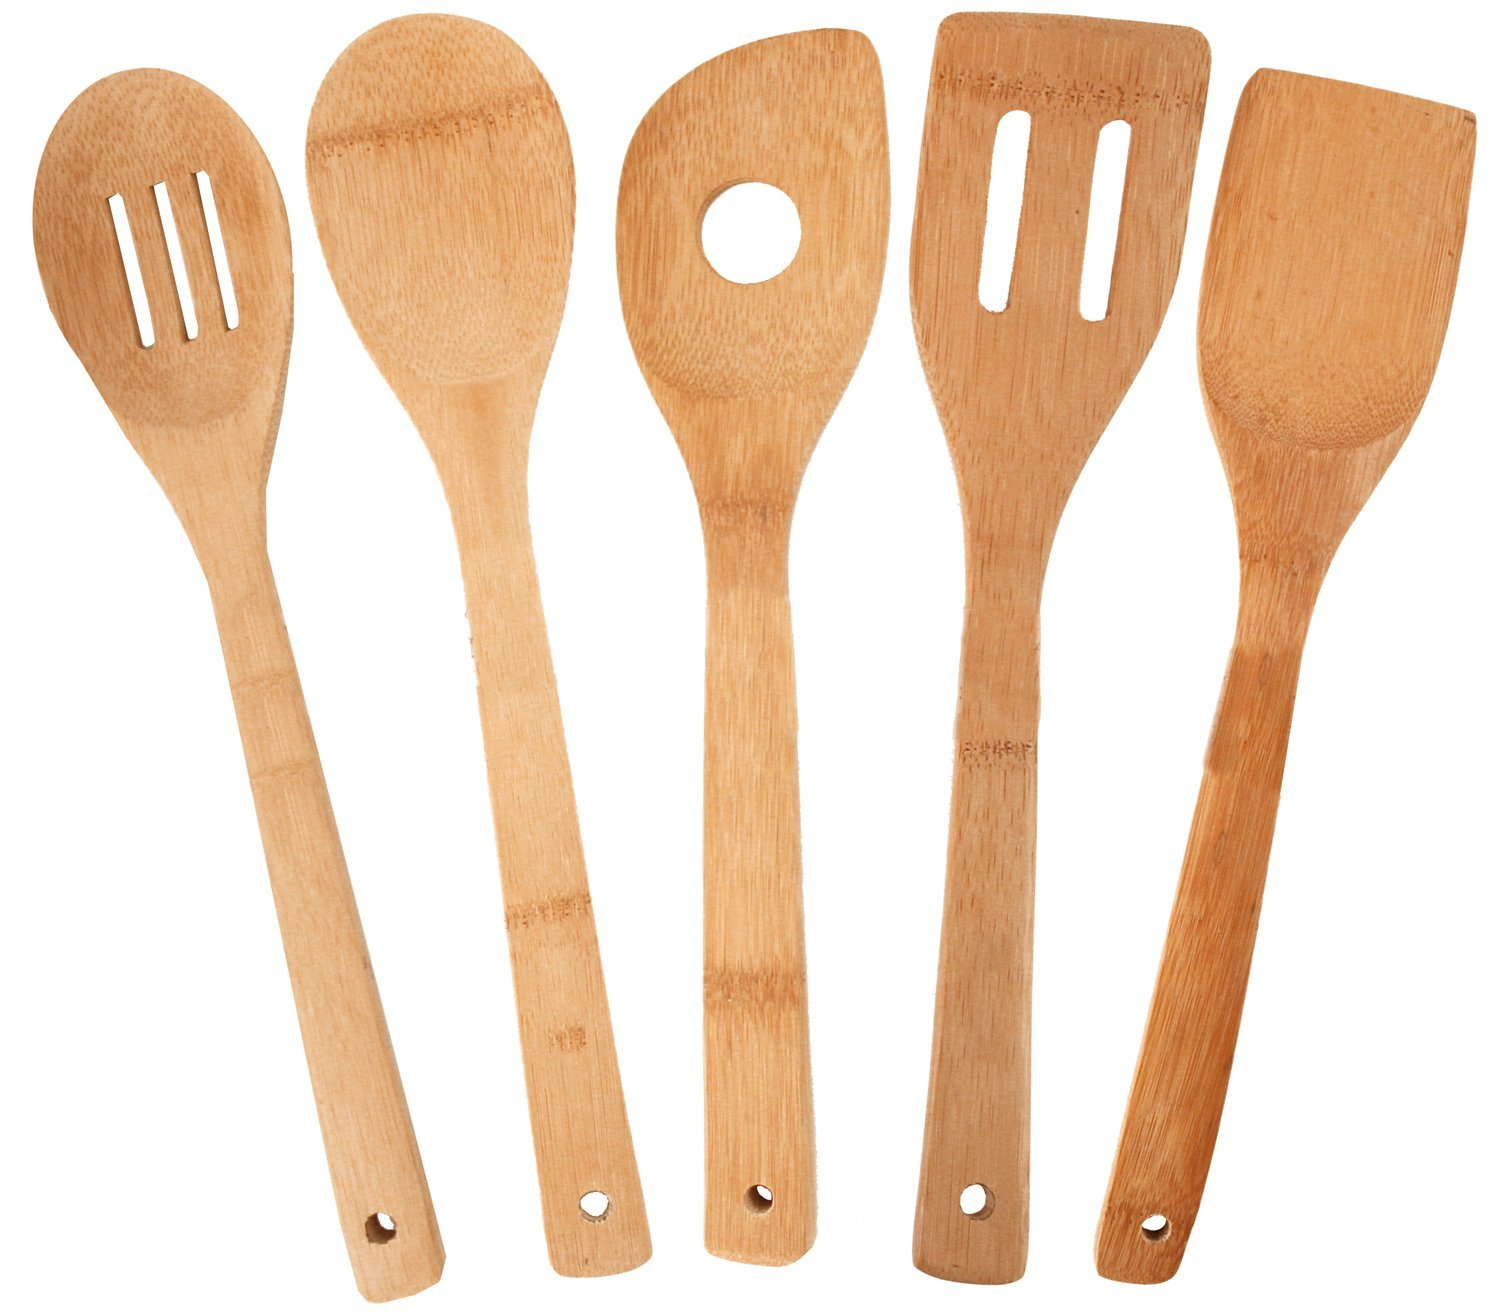 bamboo-wooden-spoon-set